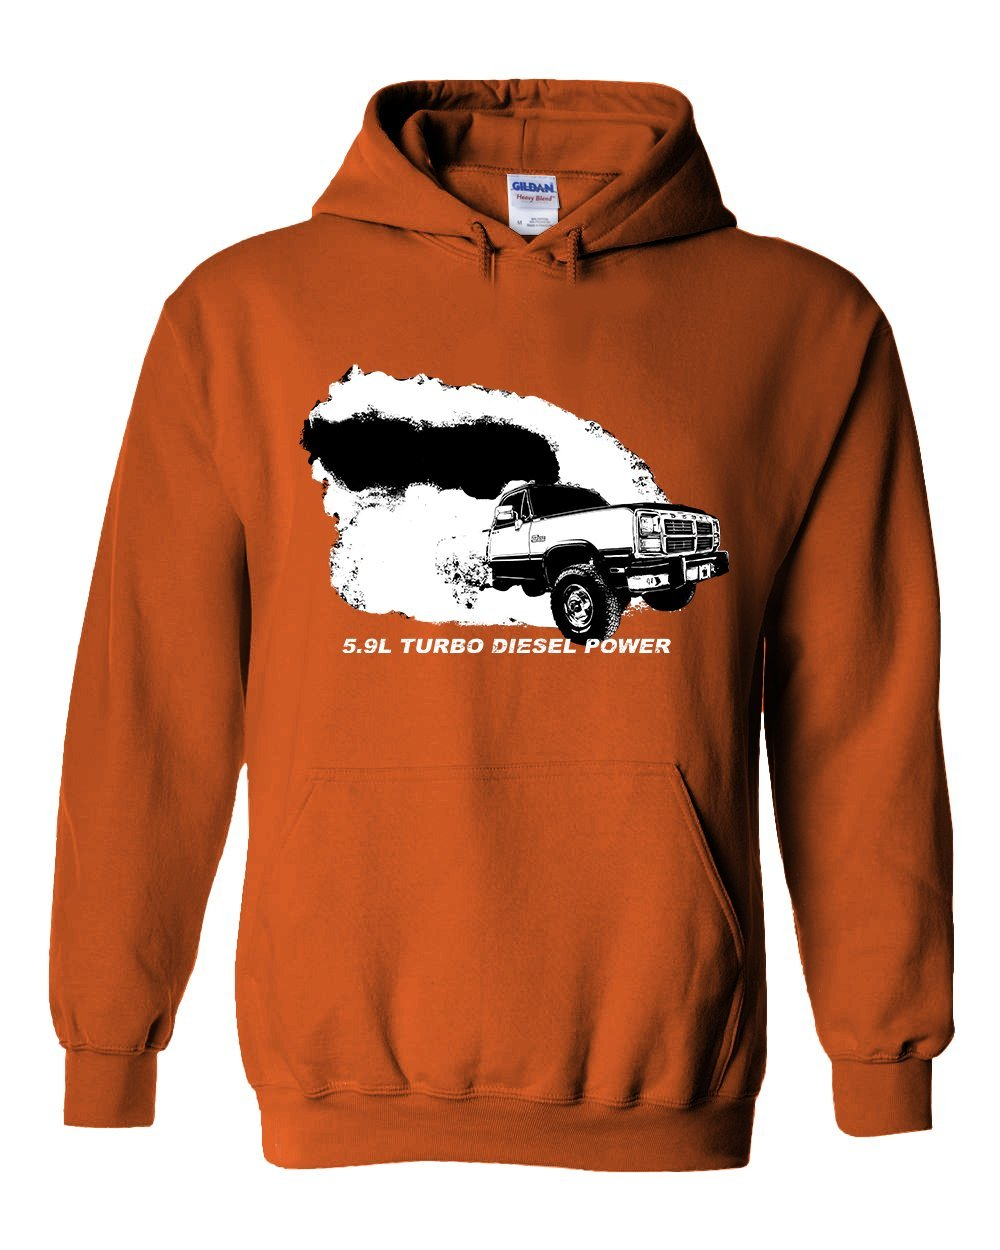 Cummins 12 or 24 Valve 5.9l Diesel powered 2nd gen Dodge Ram T-shirt from Aggressive Thread Truck Apparel